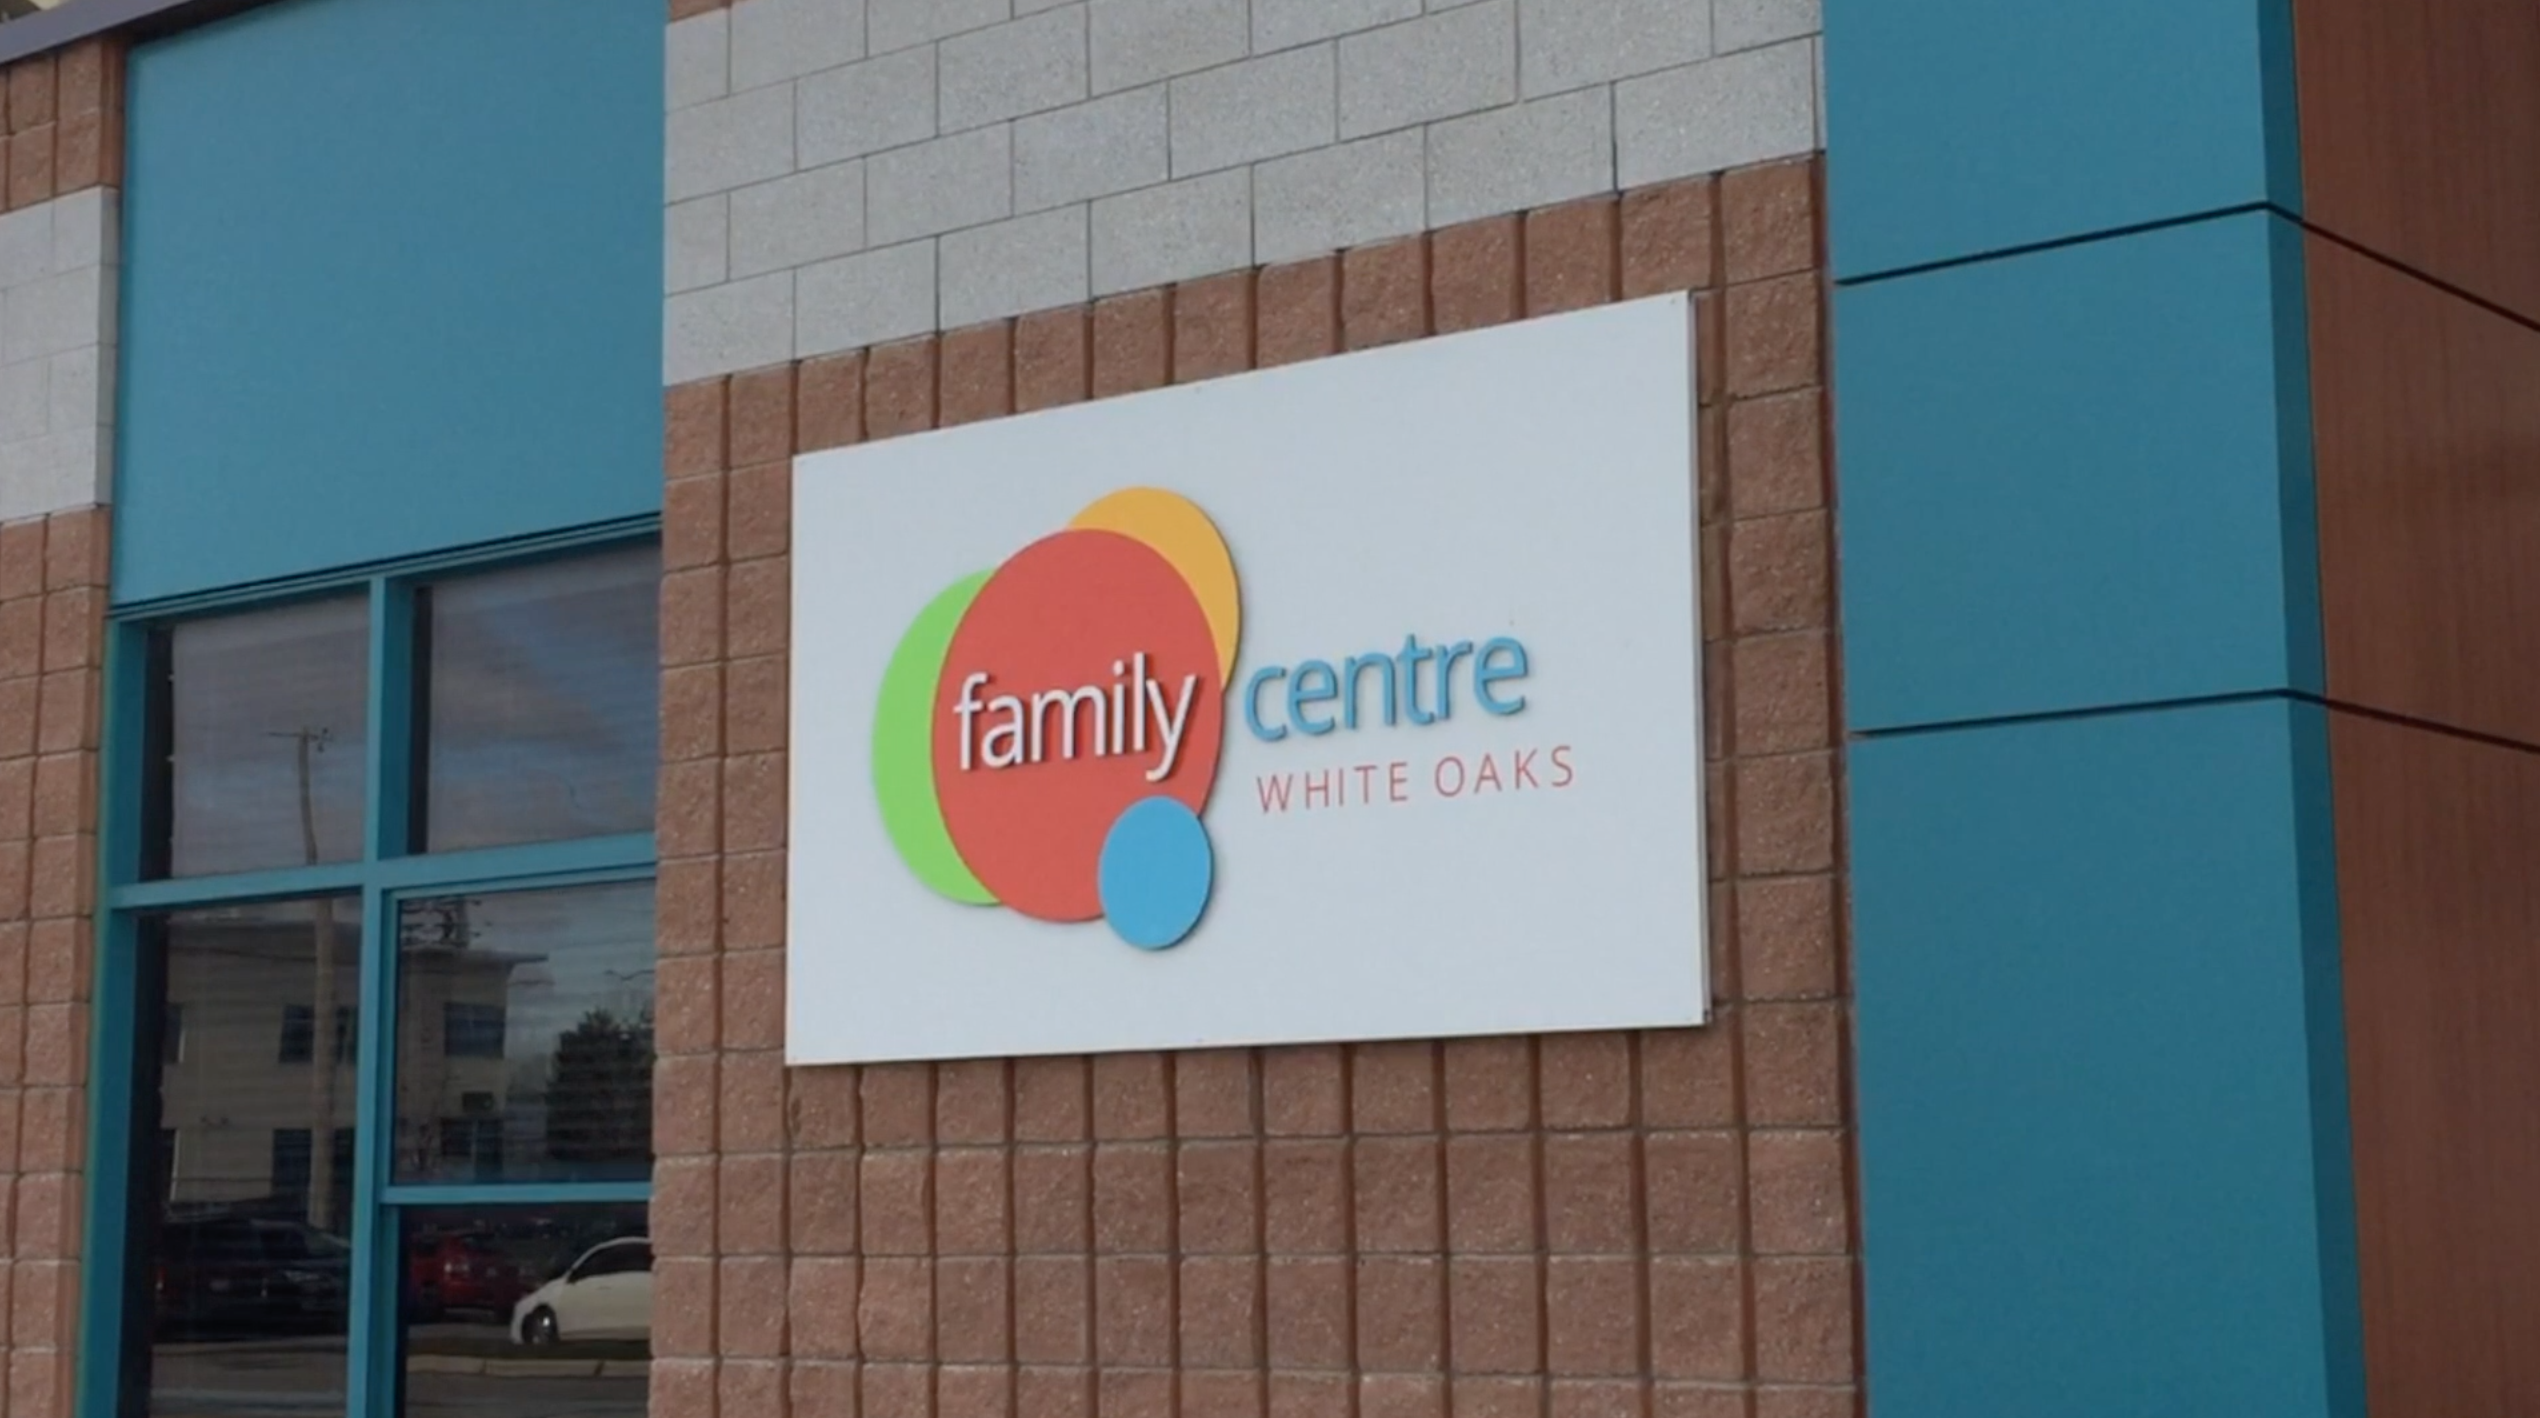 Family Centres provide important services to London families